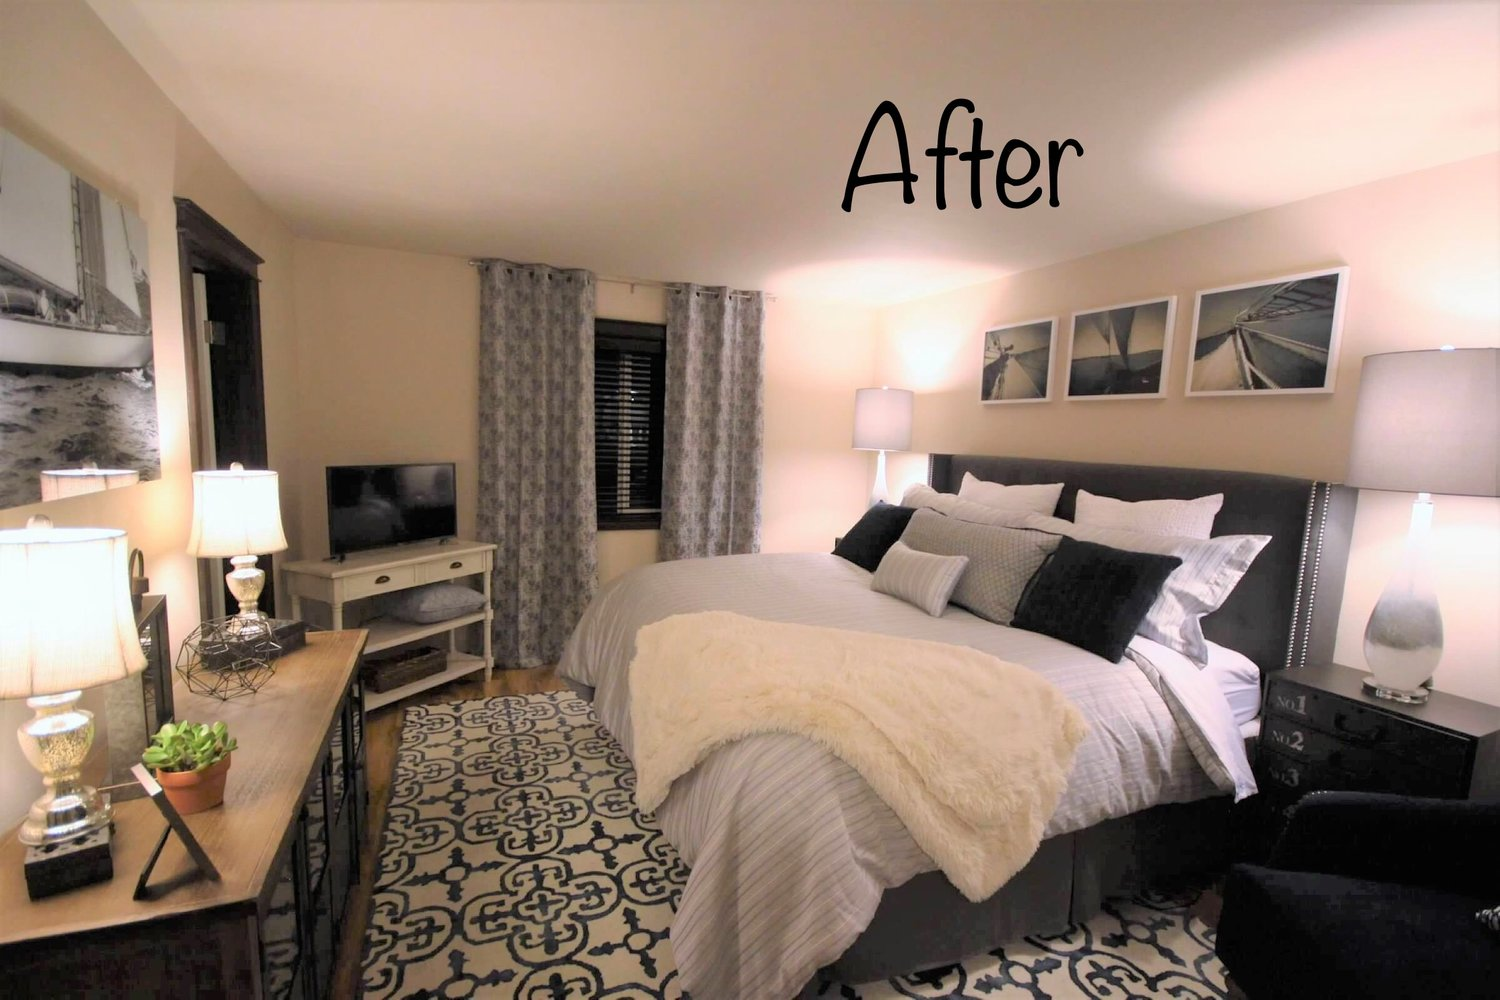 AFTER: The same bedroom with furnishings installed prior to showing the house.